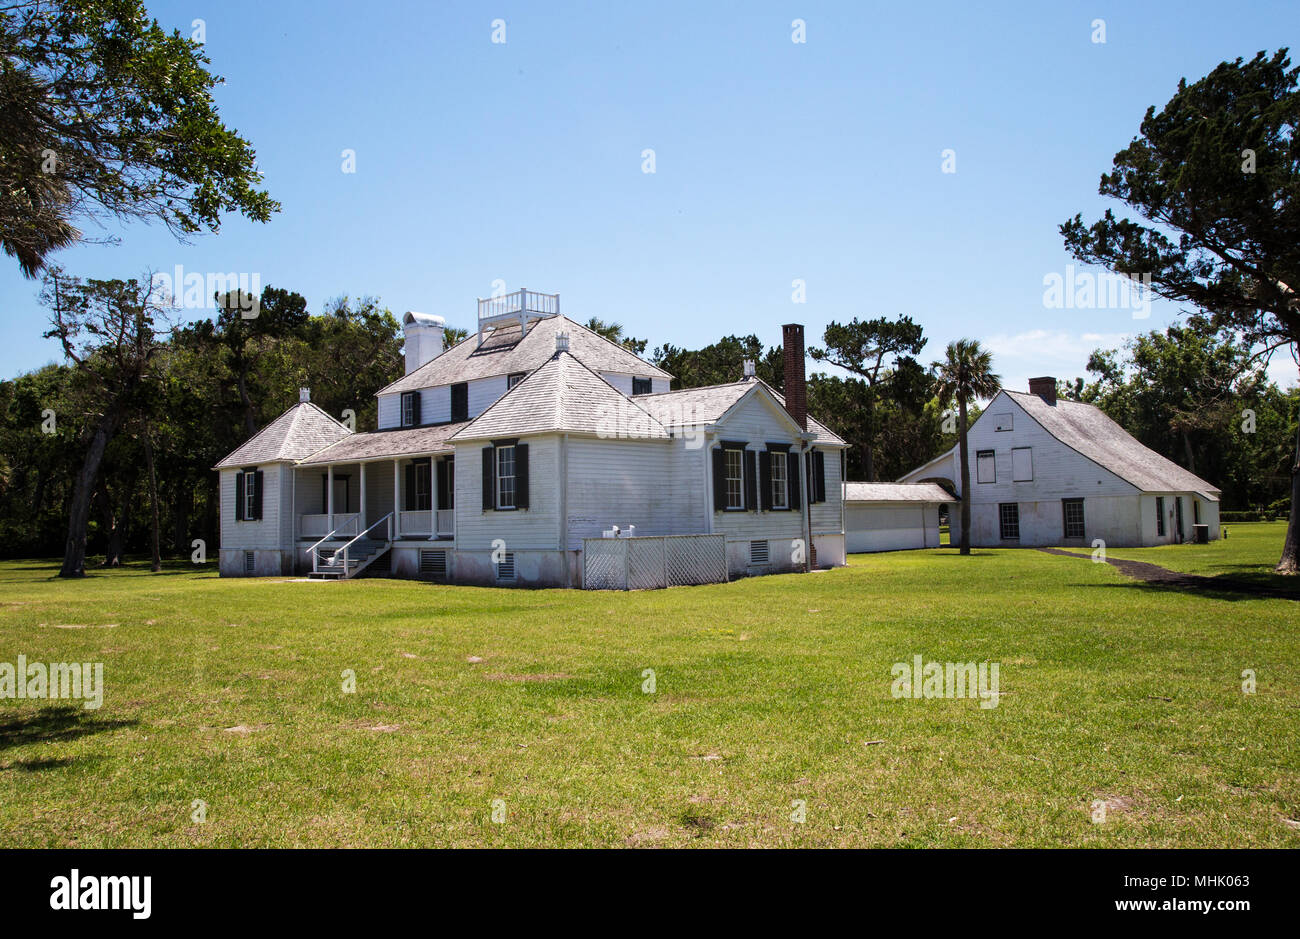 The Kingsley Plantation house in Jacksonville Florida sits on an island in the Fort George River. - Stock Image